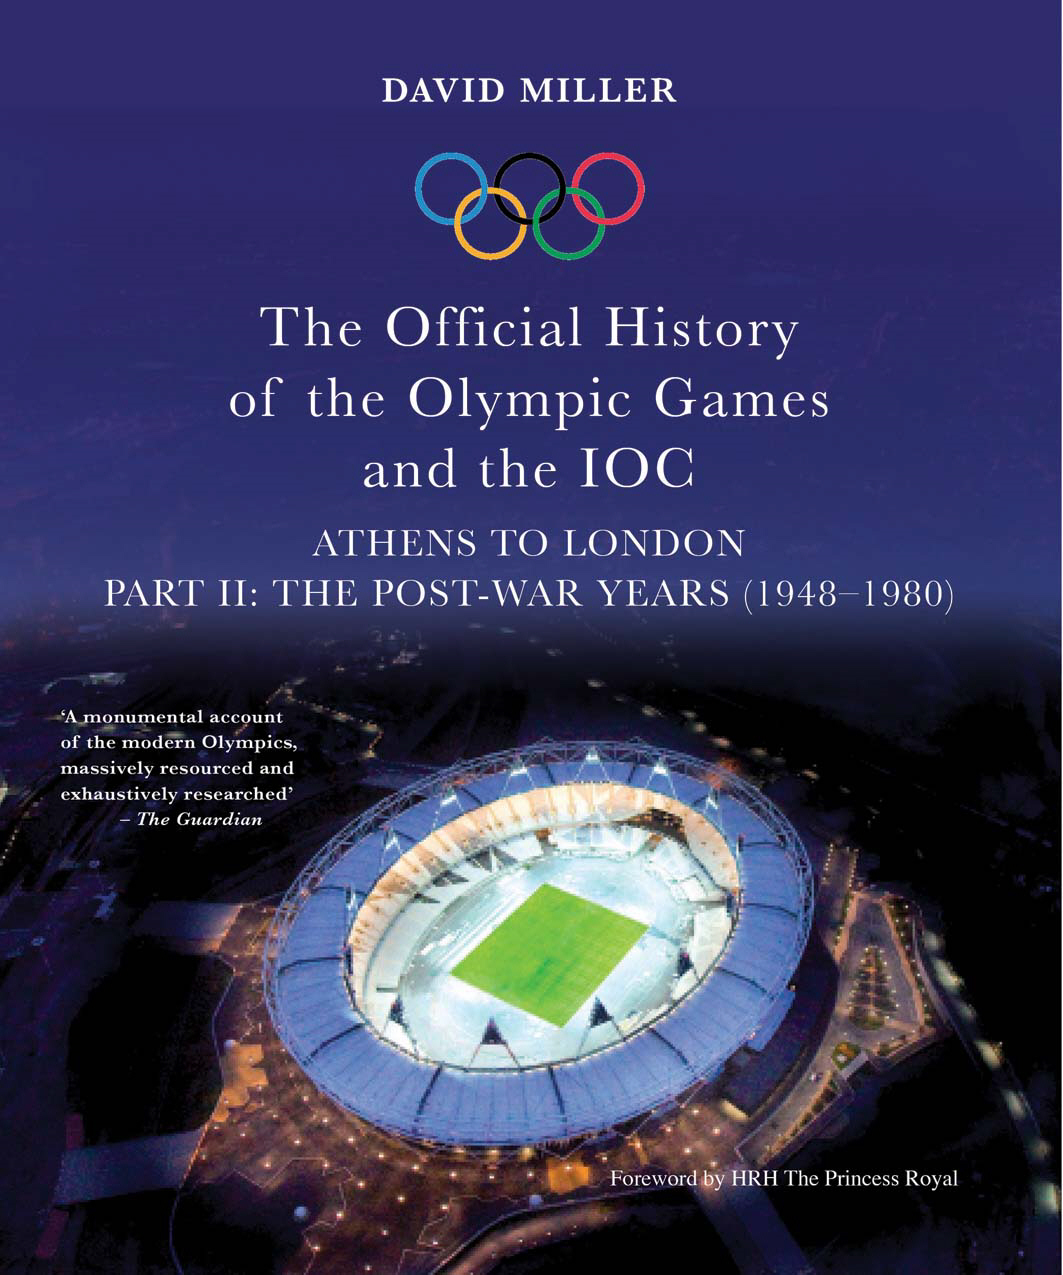 The Official History of the Olympic Games and the IOC - Part II: The Post-War Years (1948?1980)